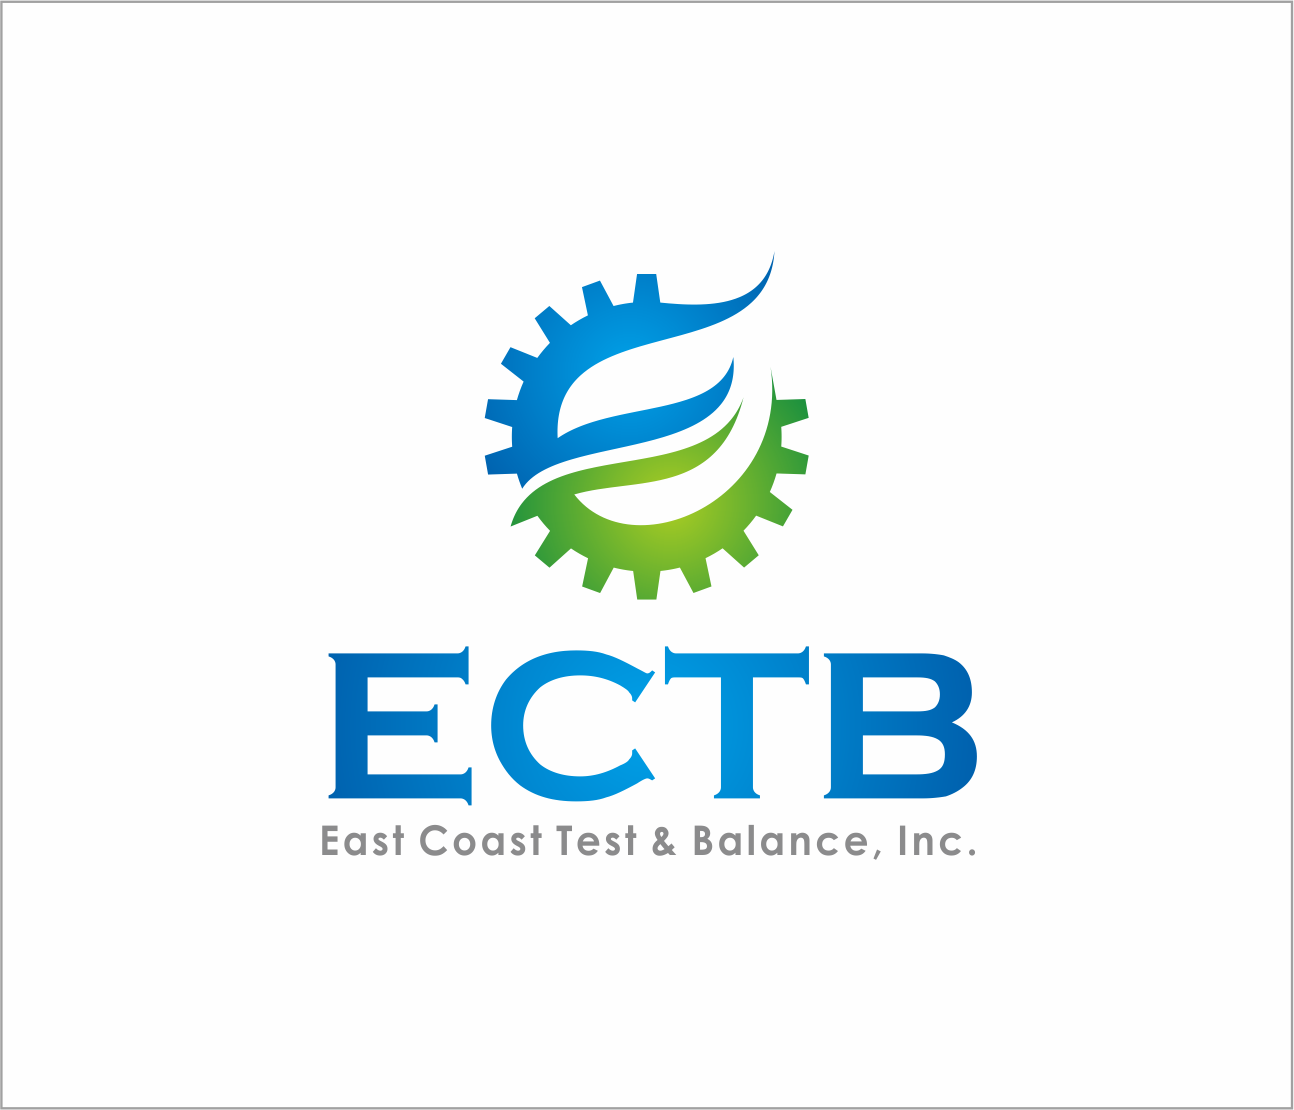 Logo Design by Armada Jamaluddin - Entry No. 74 in the Logo Design Contest Logo Design for East Coast Test & Balance, Inc. (ECTB).